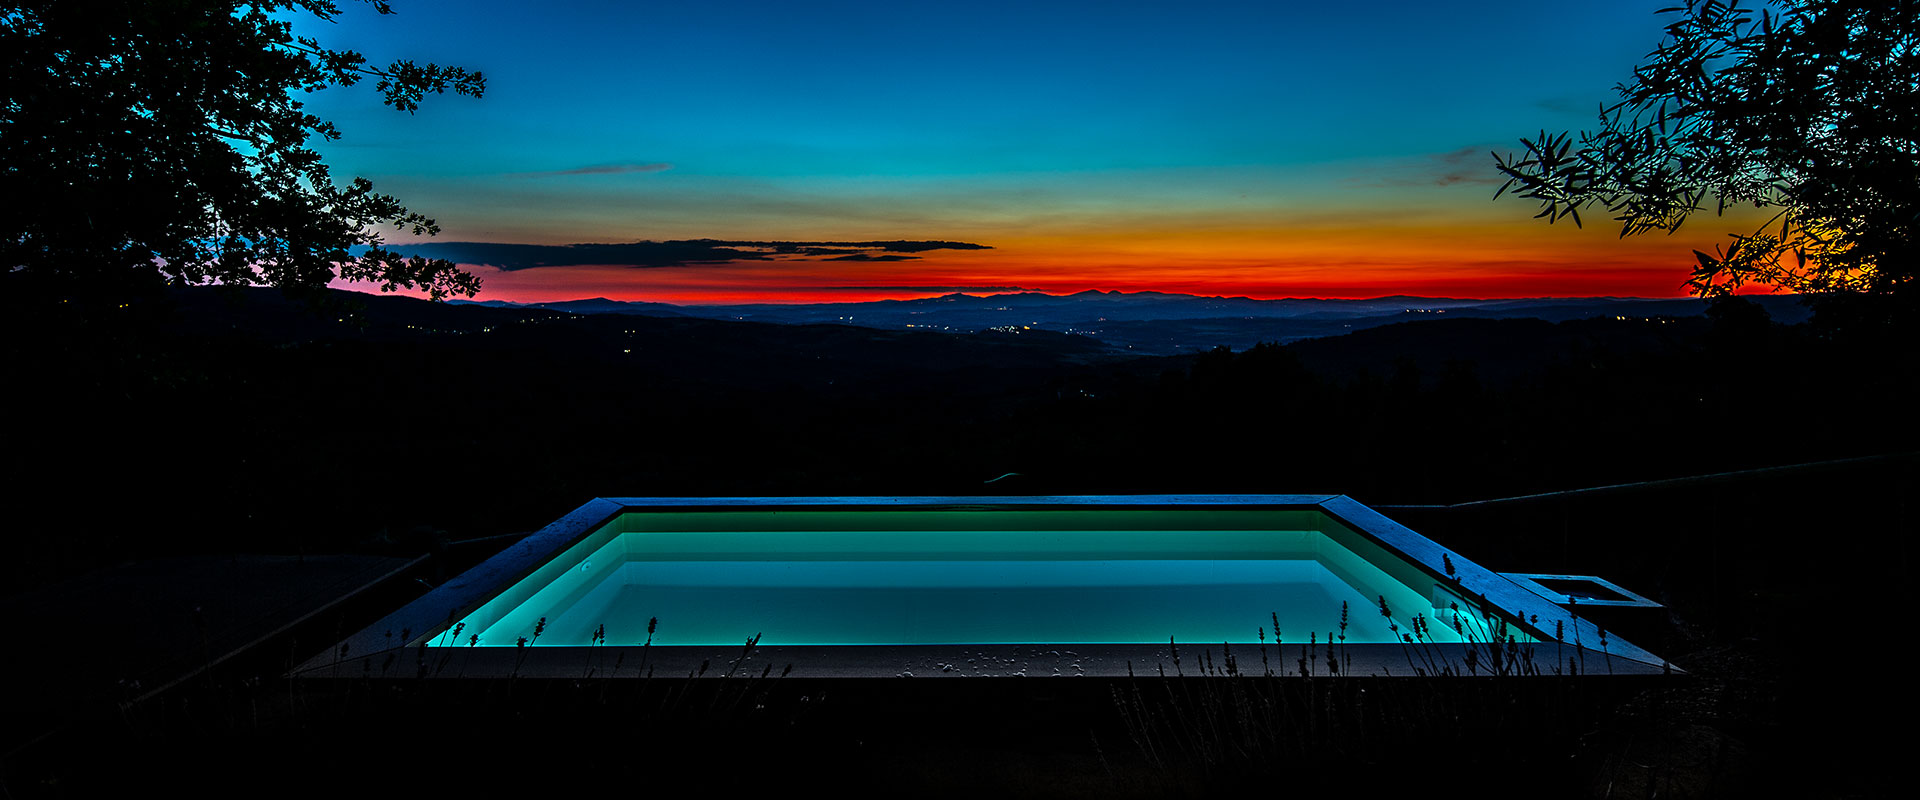 amiata_slider_pool_003